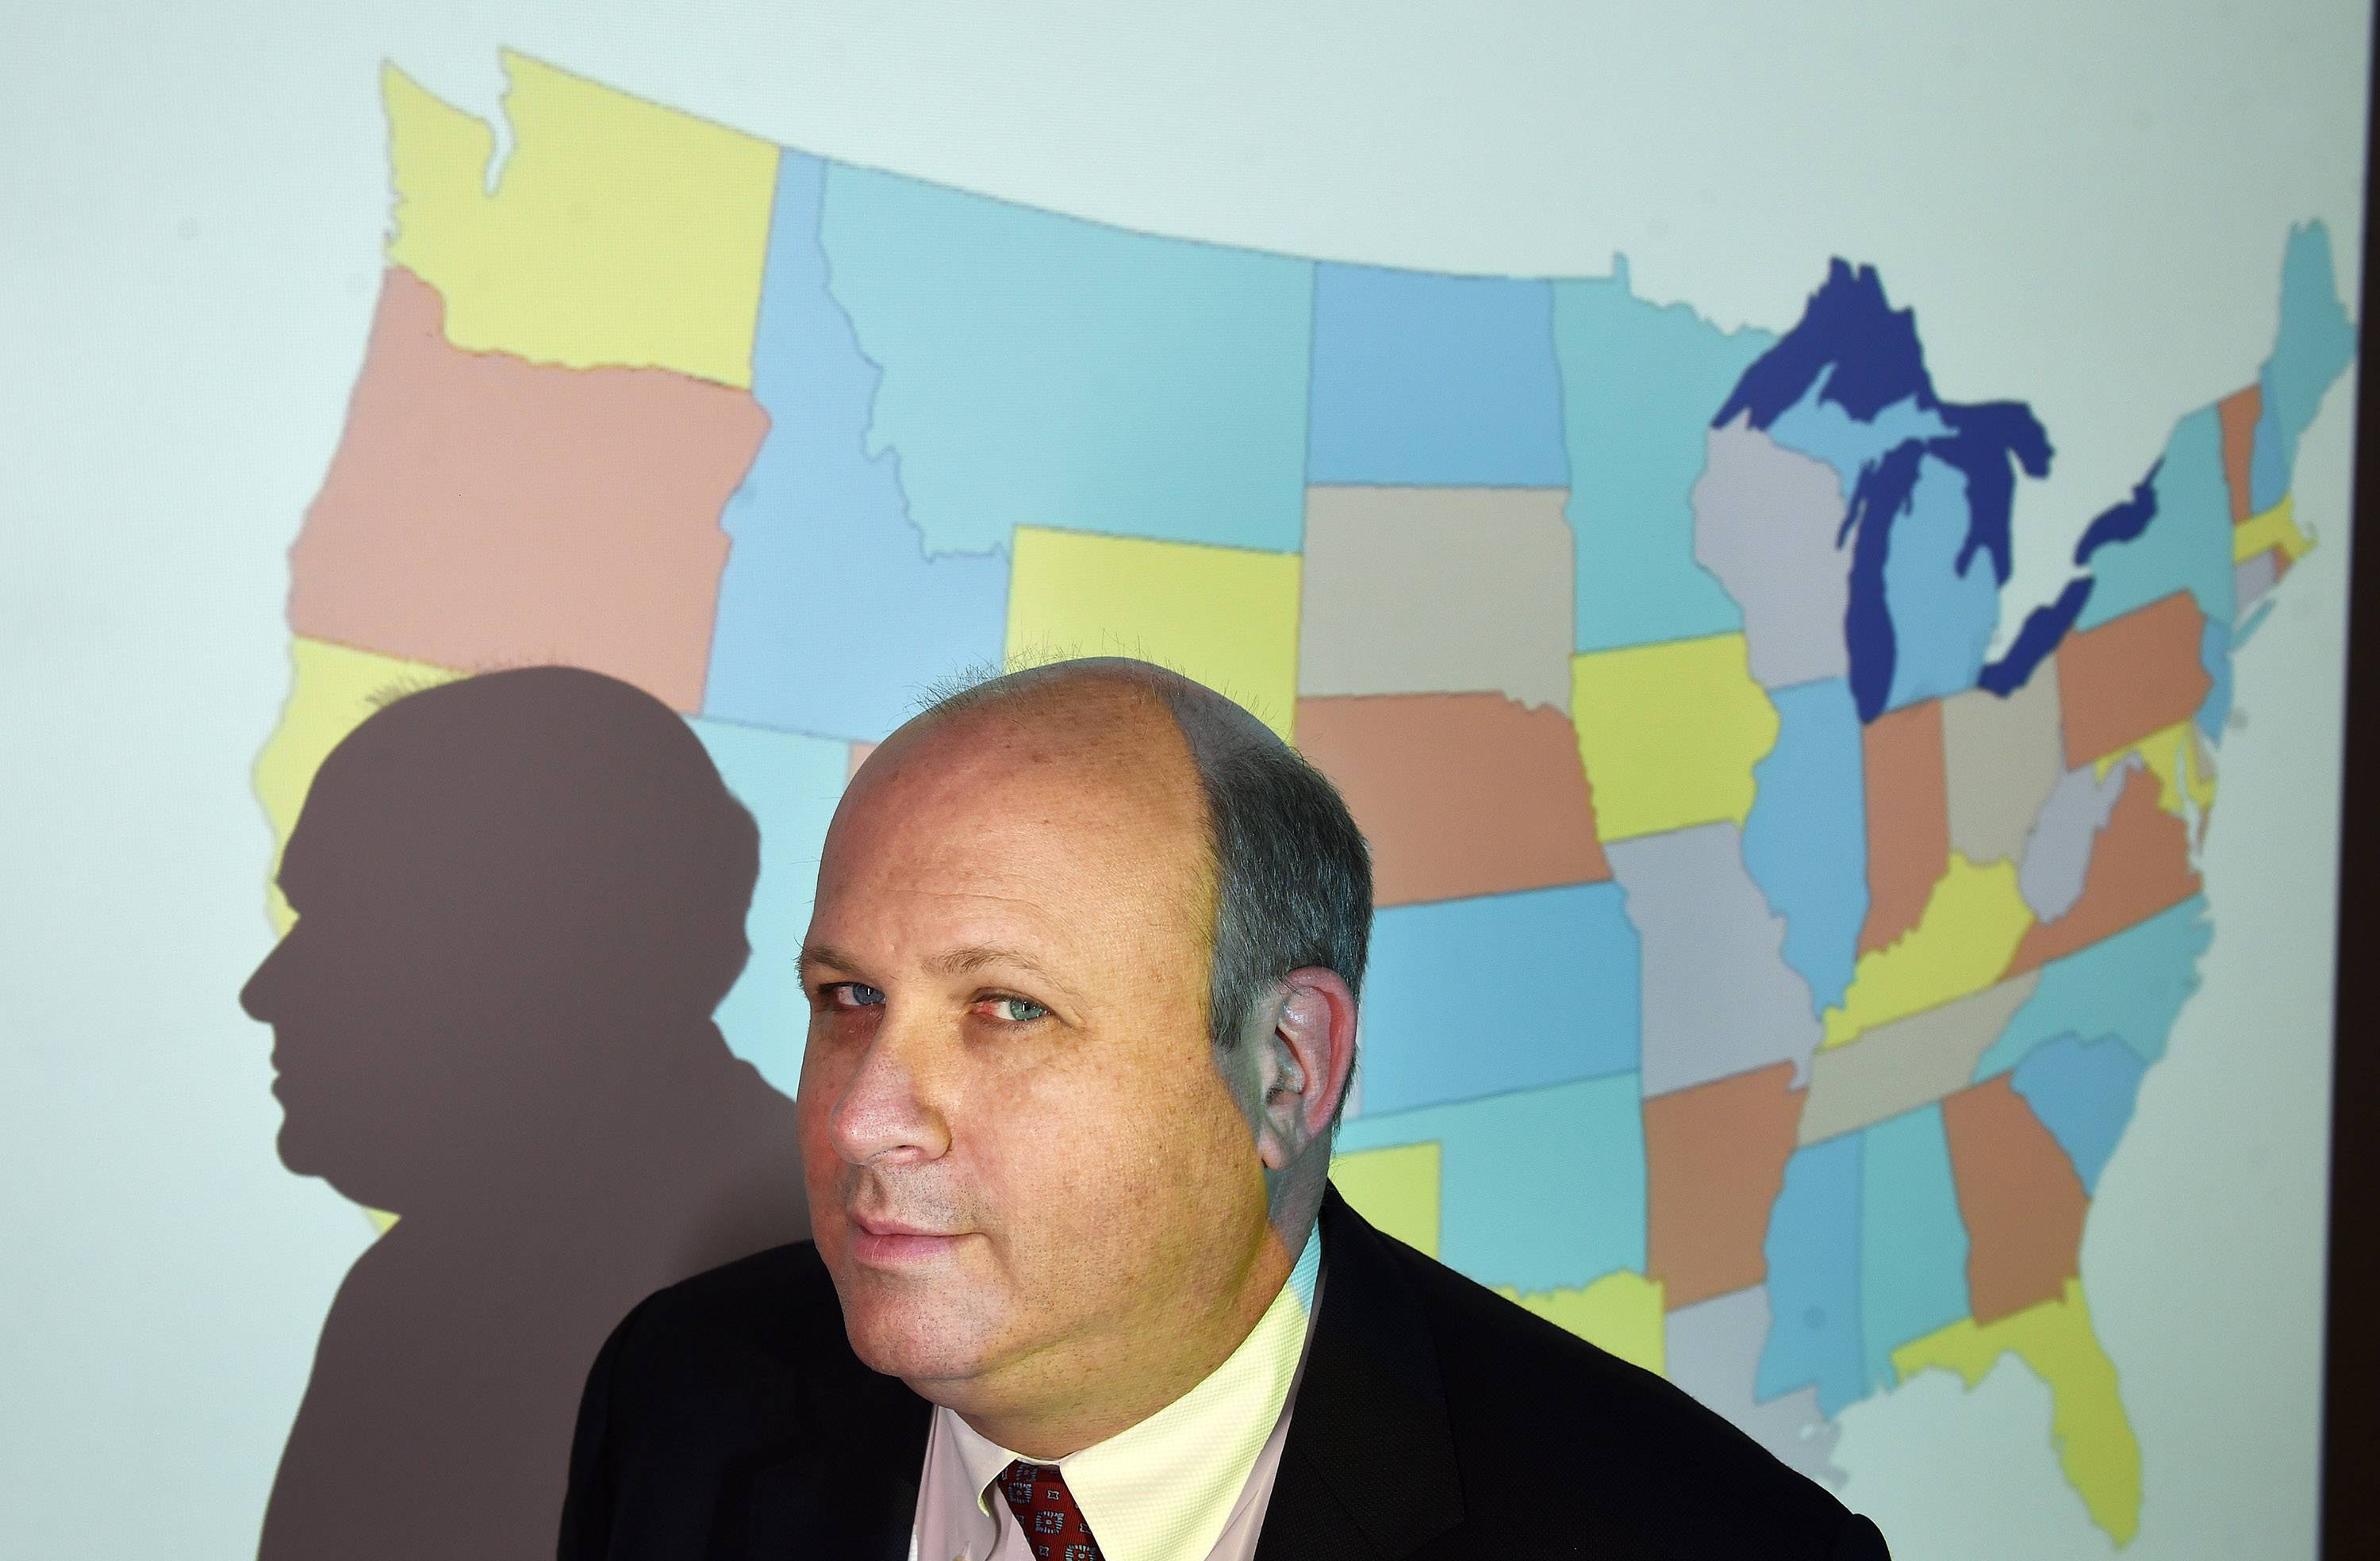 Marc Elias of Perkins Coie poses for a portrait in front of a projected map of the United States at the firm in April 2016 in Washington.